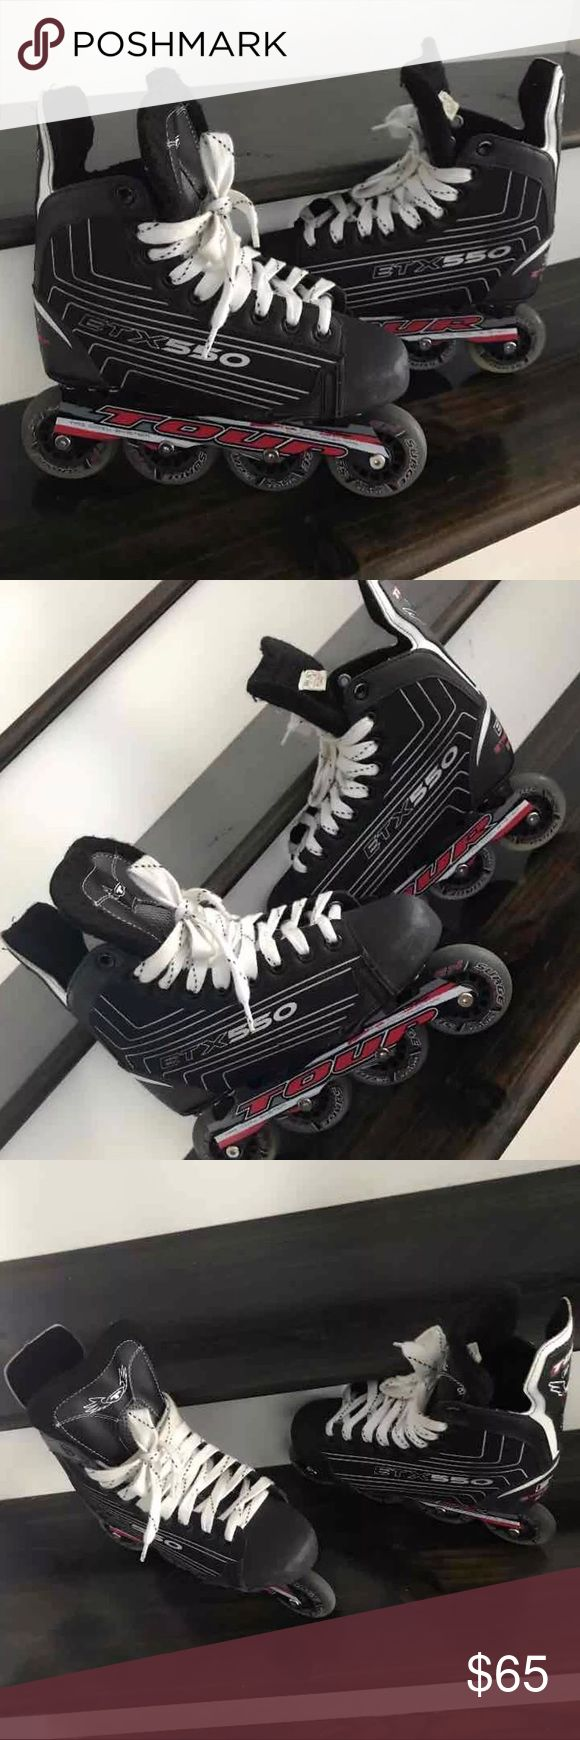 Inline Skates (Negotiable Price‼️) NEGOTIABLE!!! Black, white, and red Inline skates. Size 7 in Men! Great for Tweens, Teens or Kids with a size 7 foot! It's the summer time, so invest! Shoes Athletic Shoes